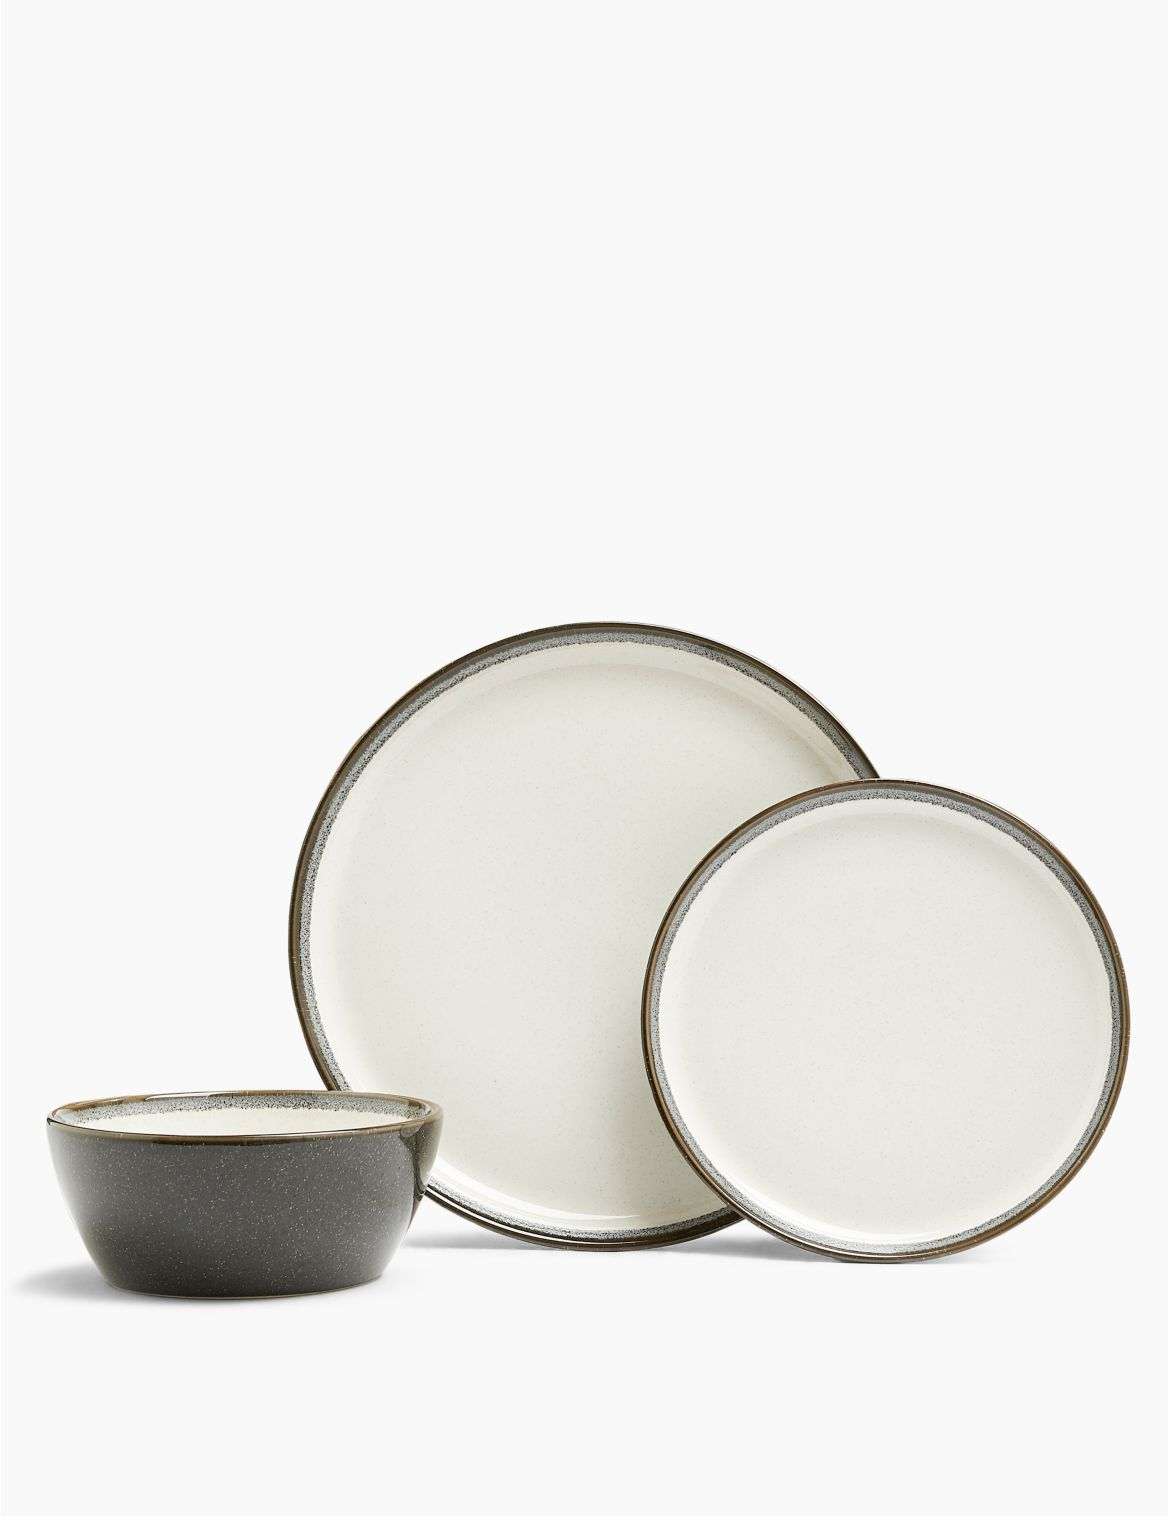 12 Piece Amberley Dinner Set charcoal